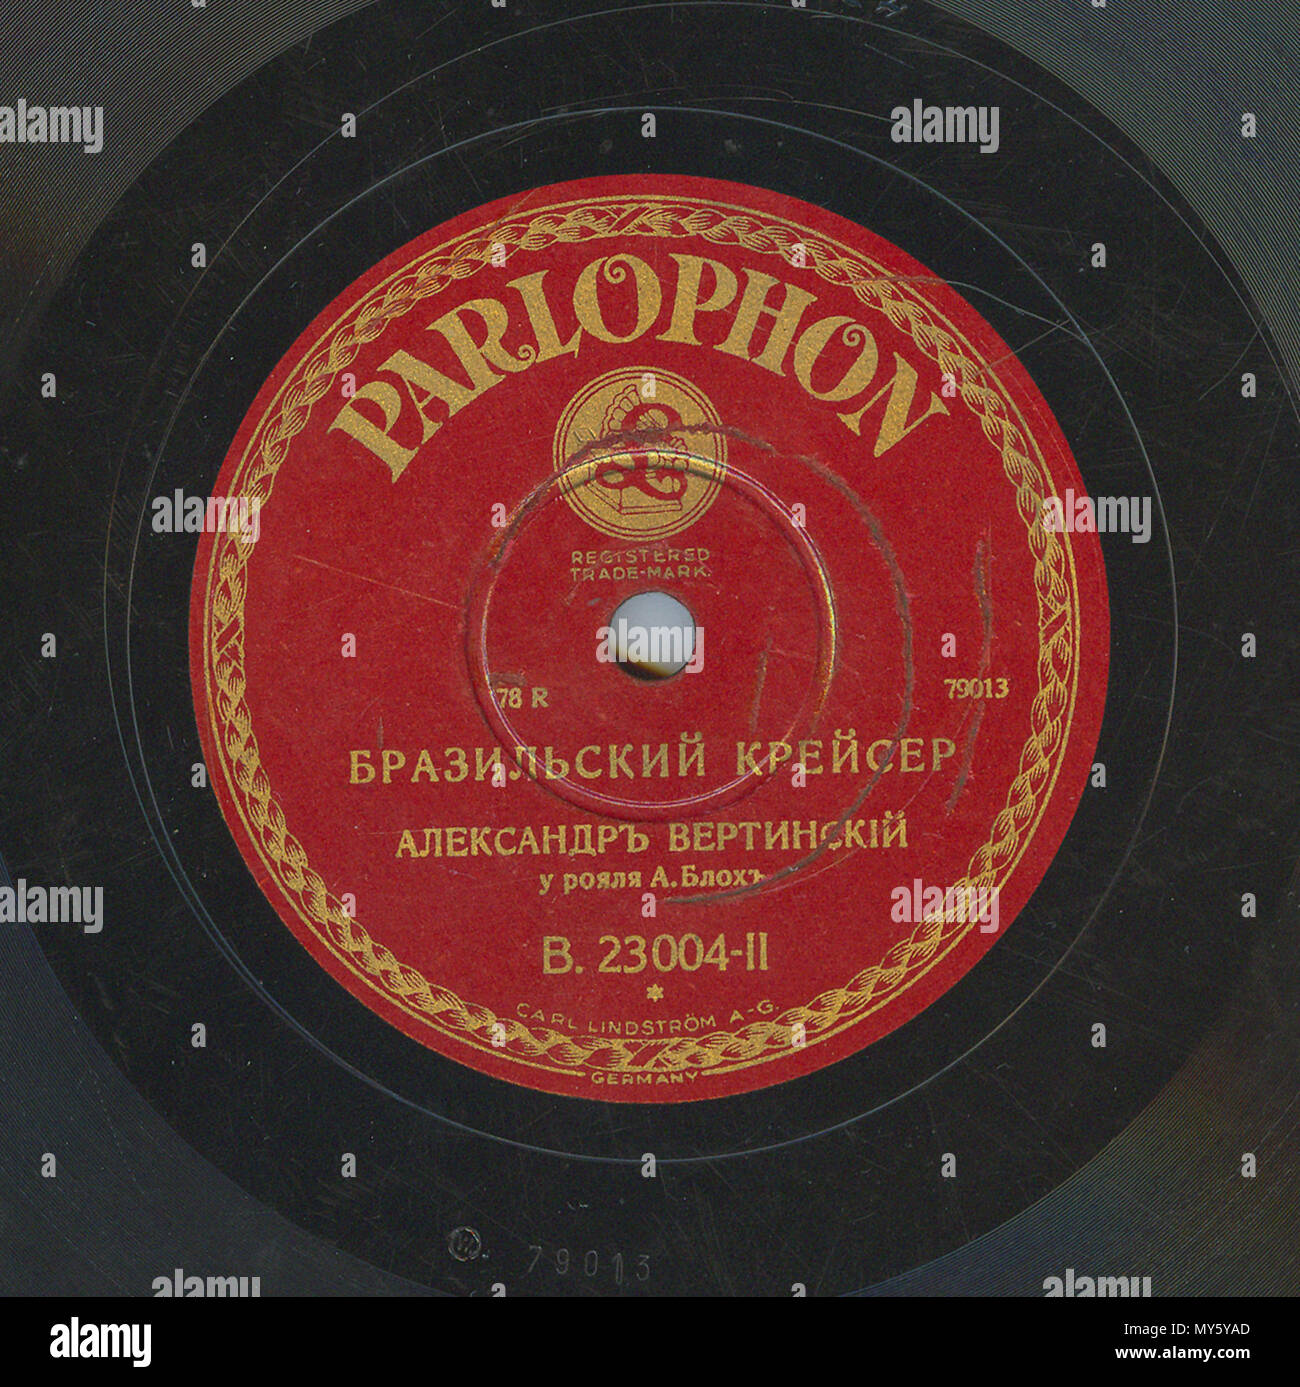 . English: Vertinsky Parlophone B.23004 02 . 6 April 2010. Parlophone 548 Vertinsky Parlophone B.23004 02 Stock Photo